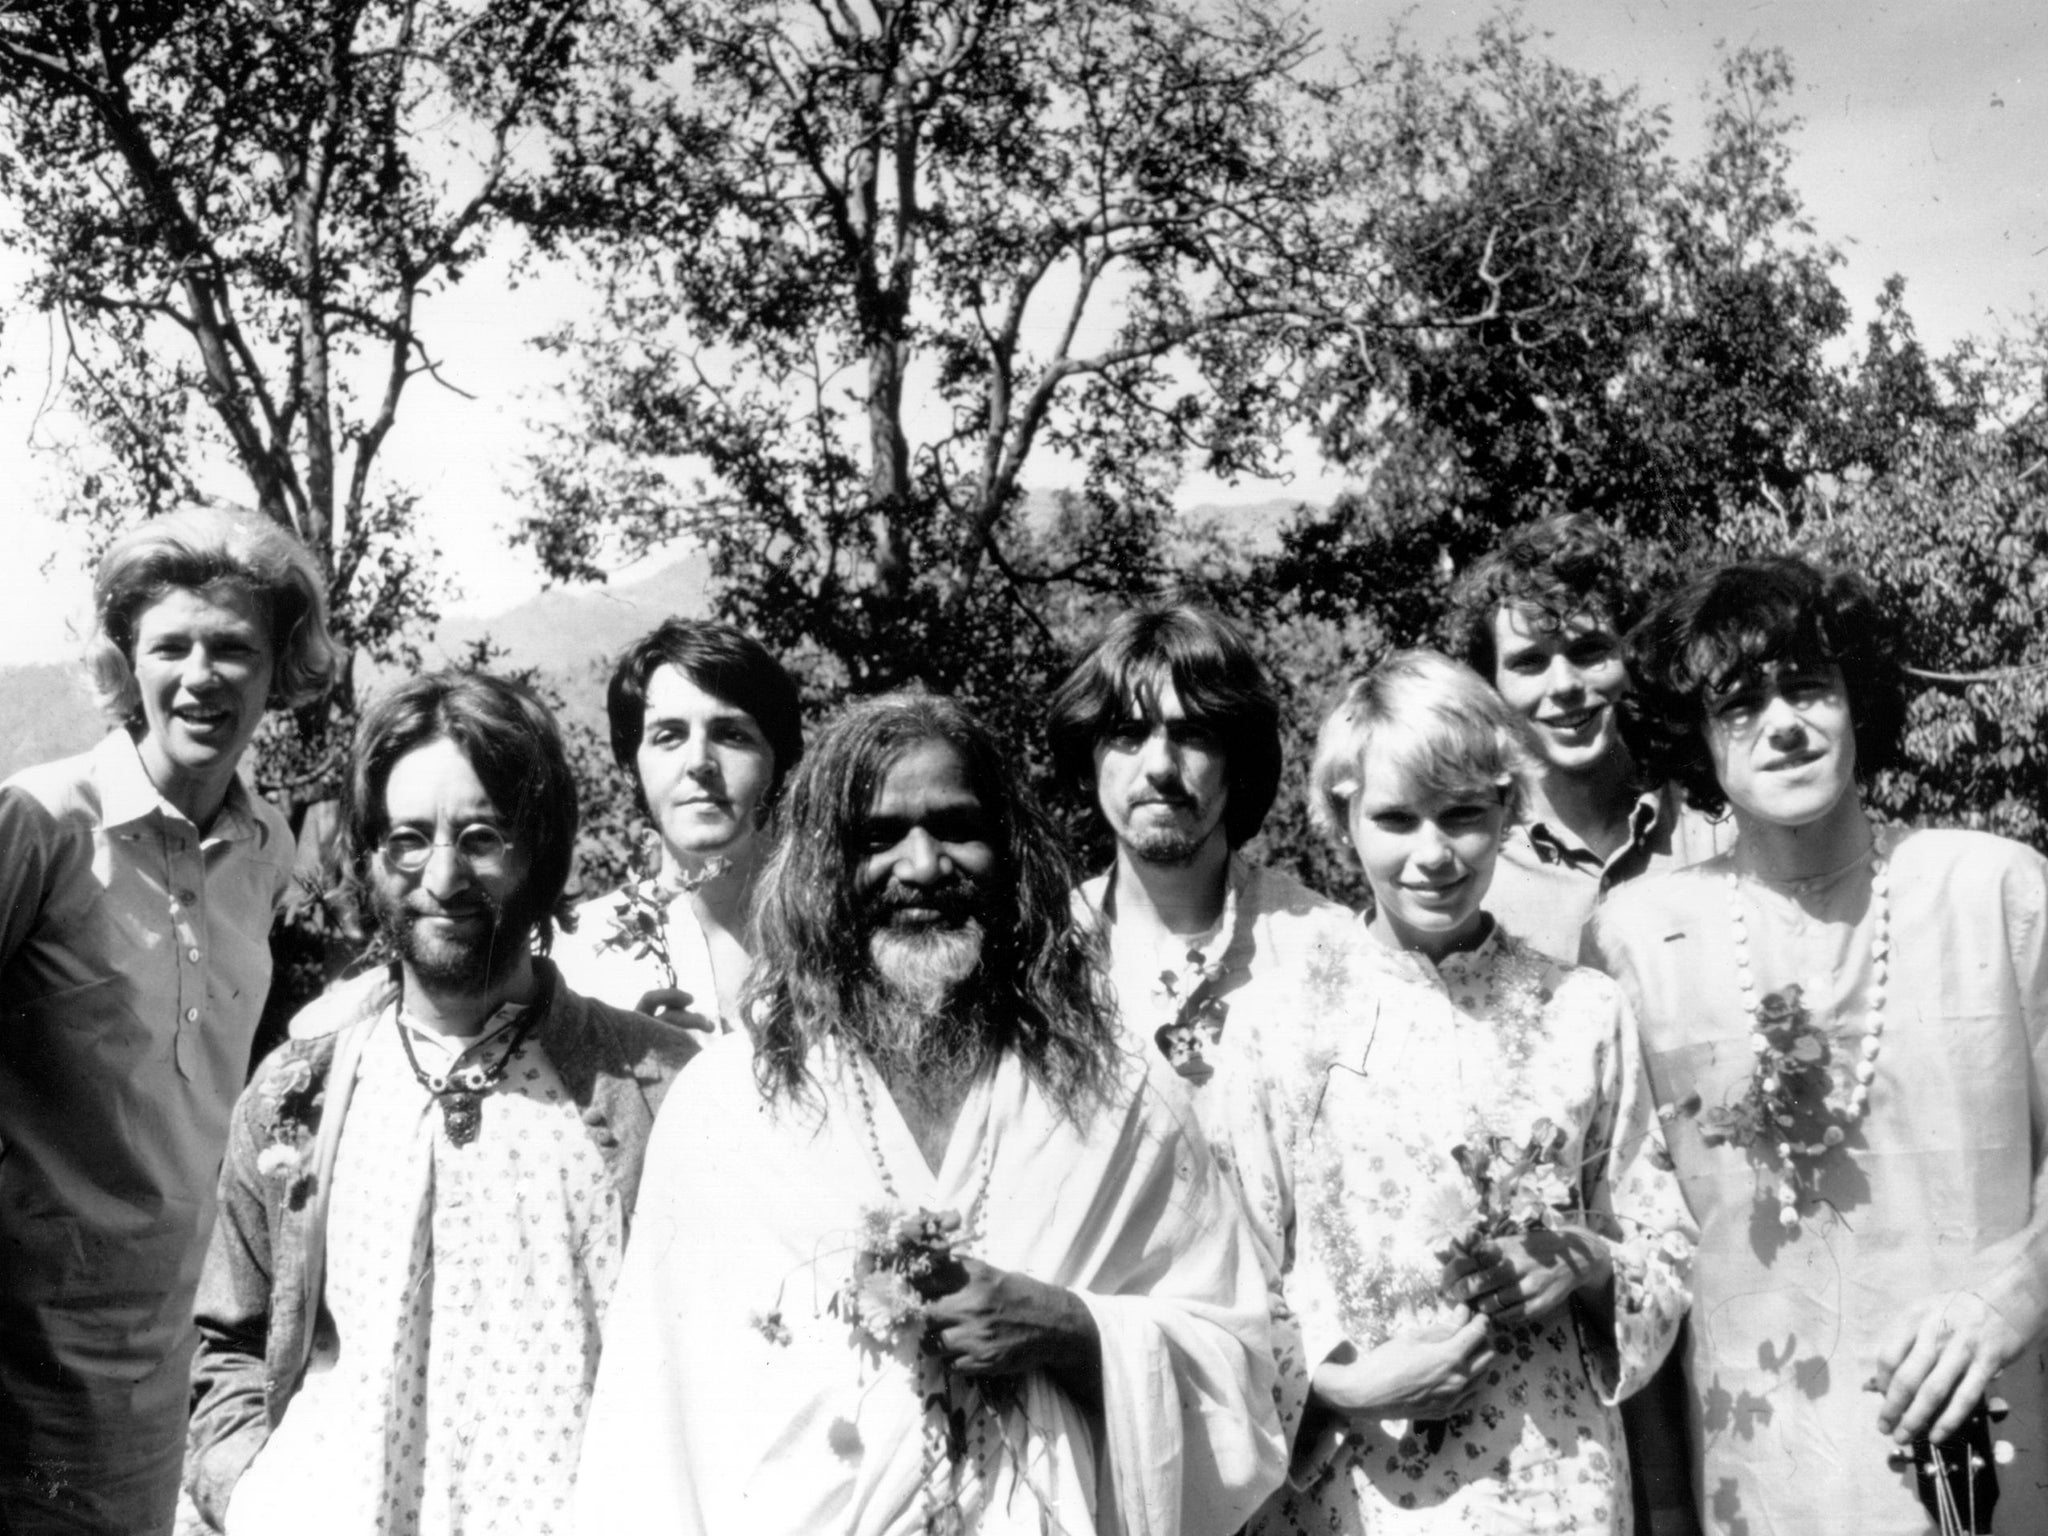 The Beatles In India Recollections At The Opening Of A Liverpool Exhibition The Independent The Independent